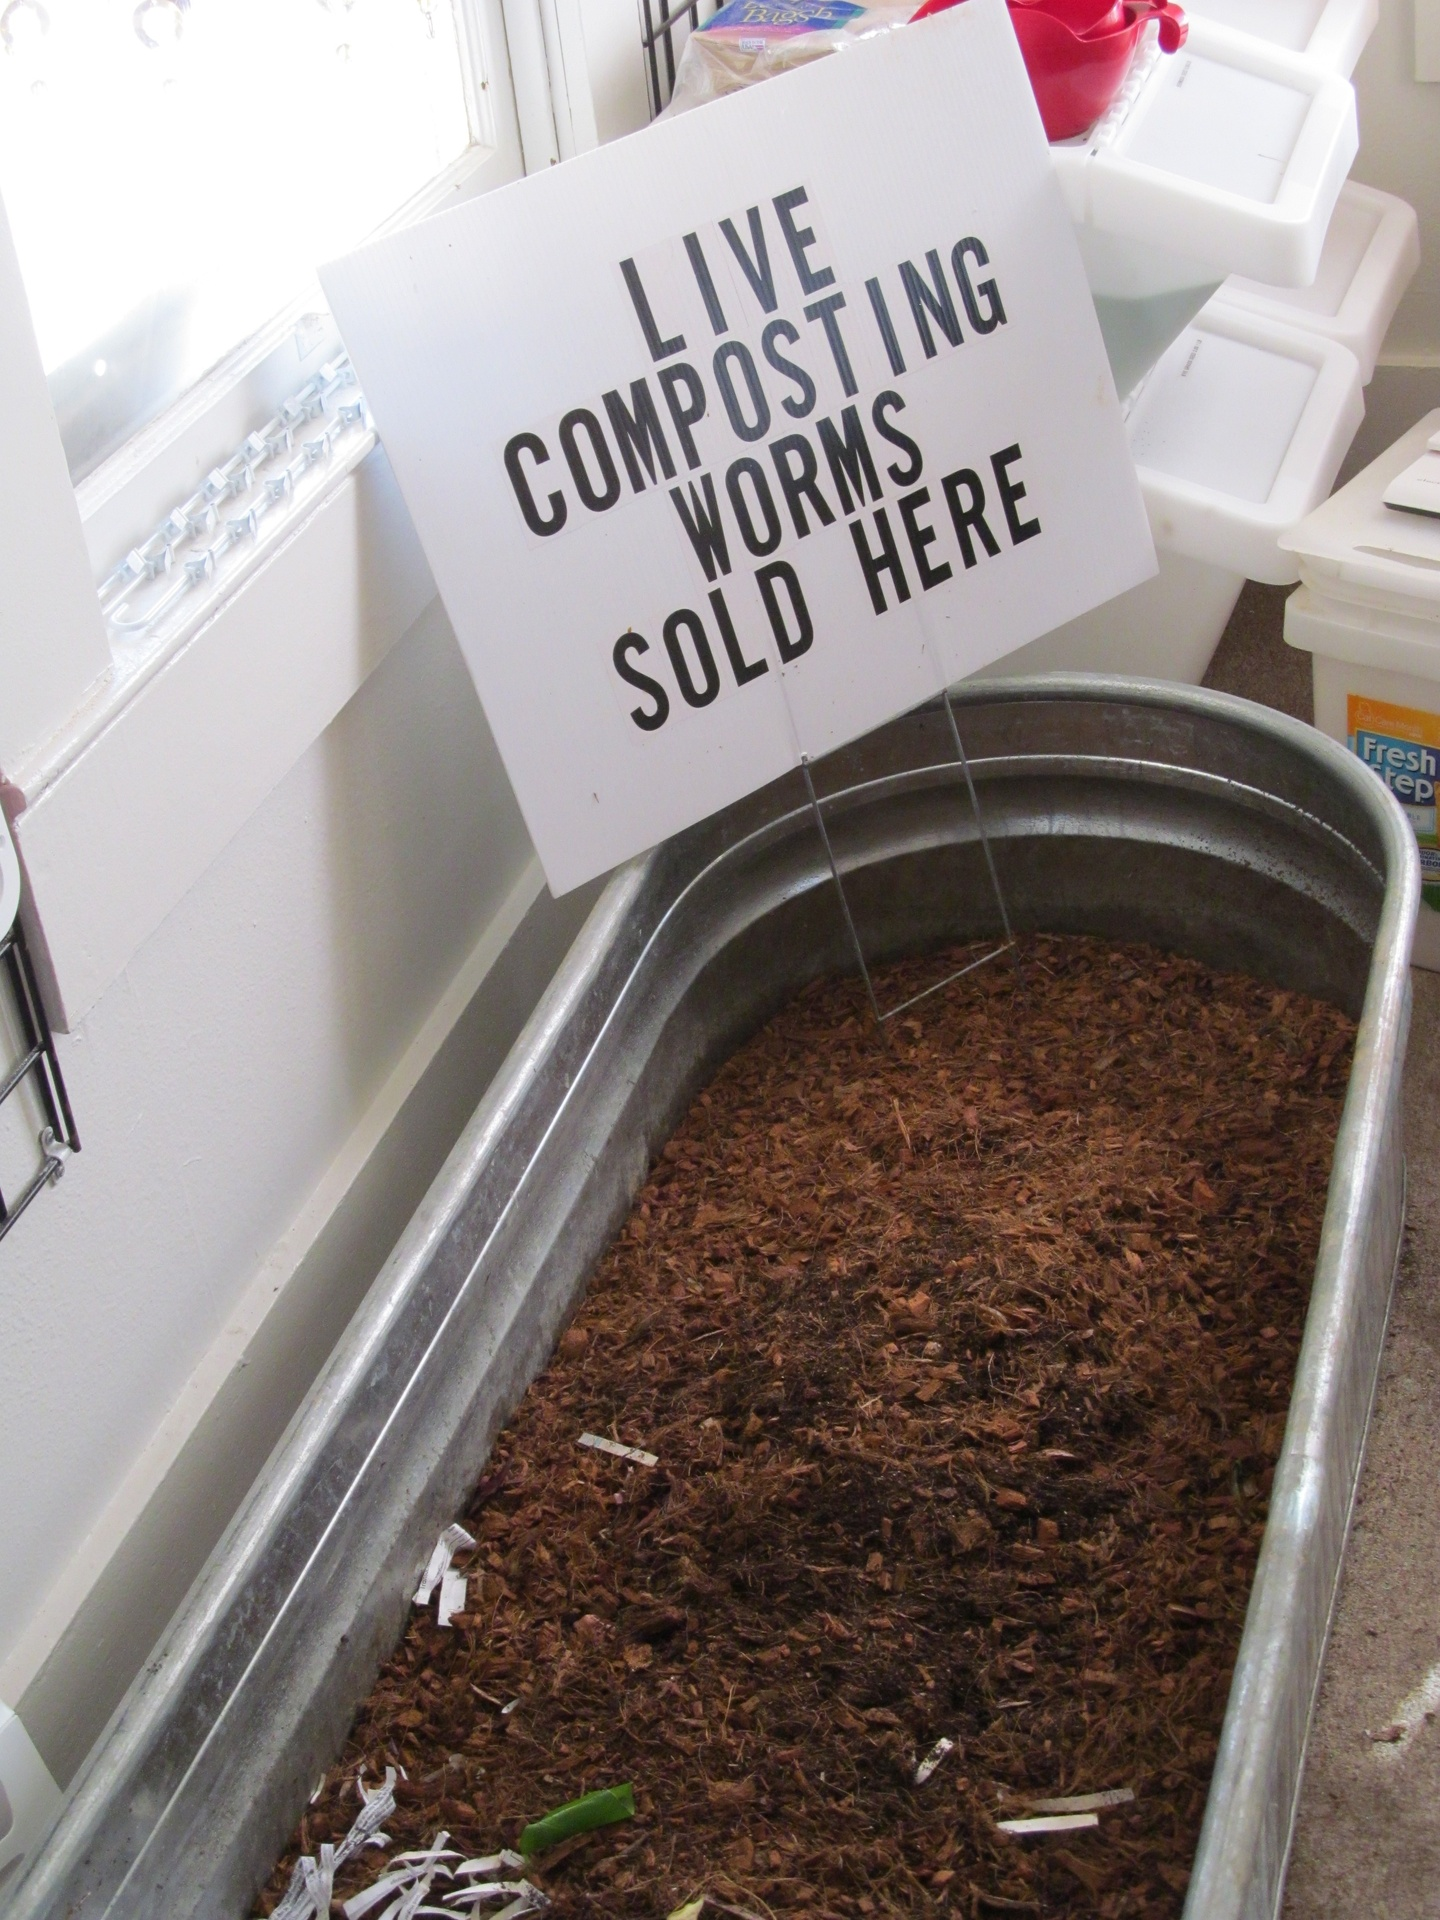 Live Composting Worms